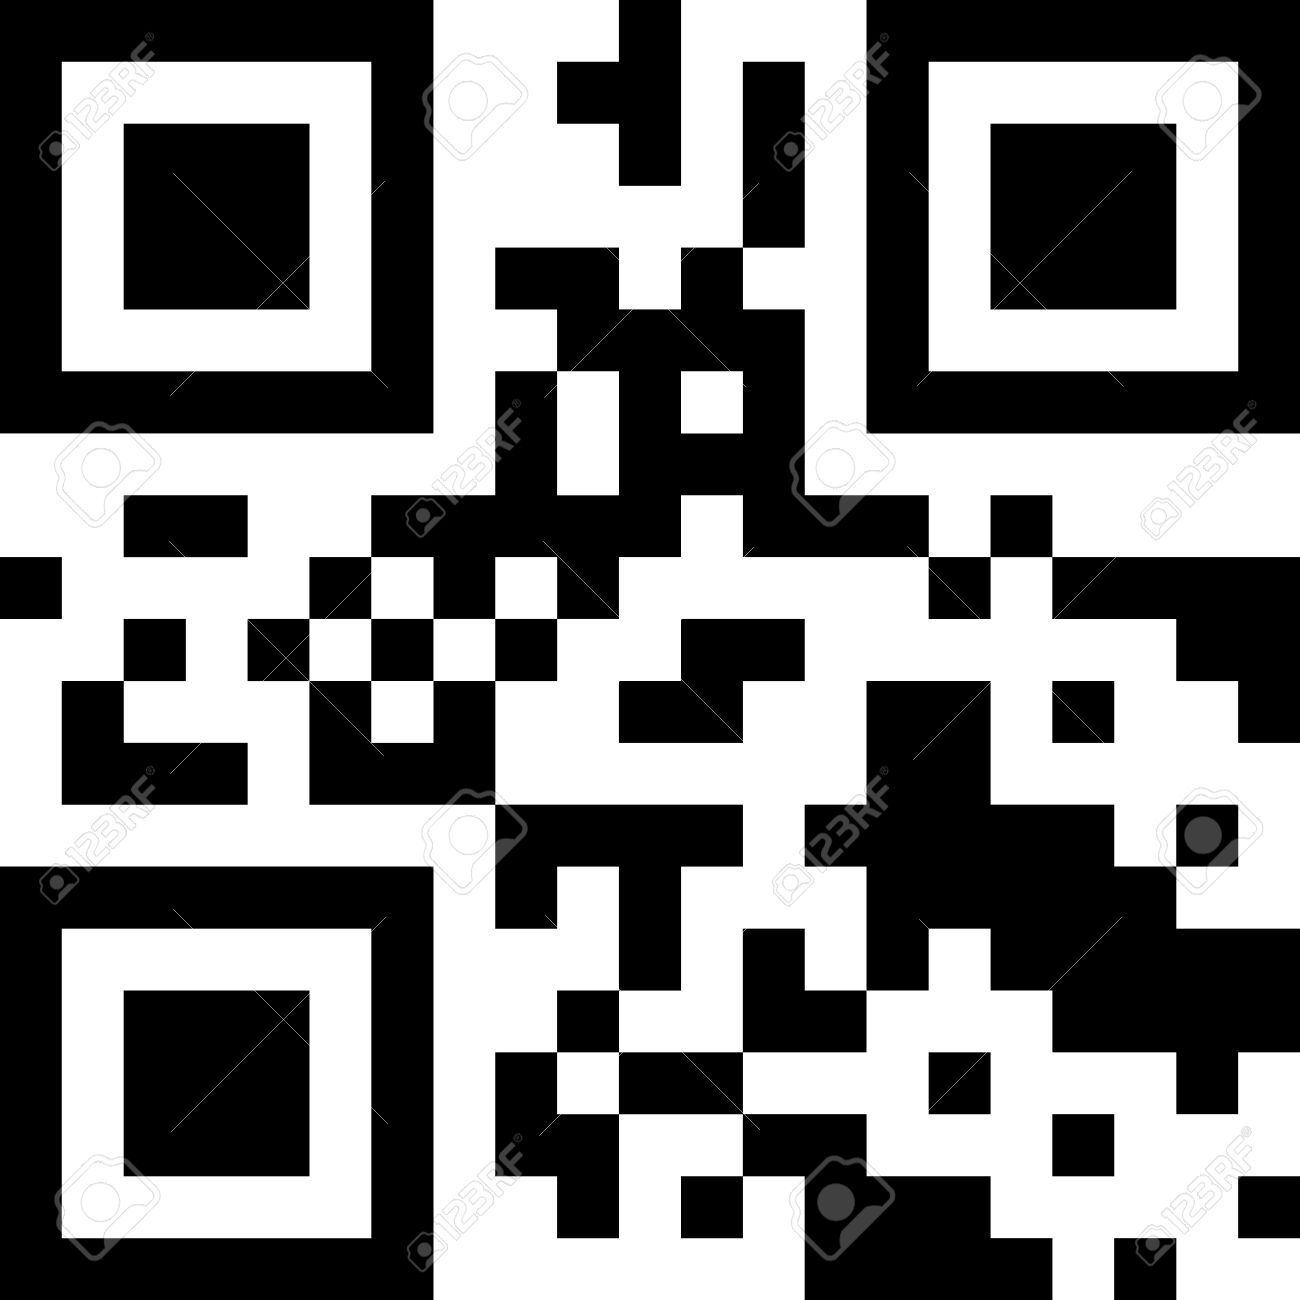 sample qr code ready to scan with smart phone